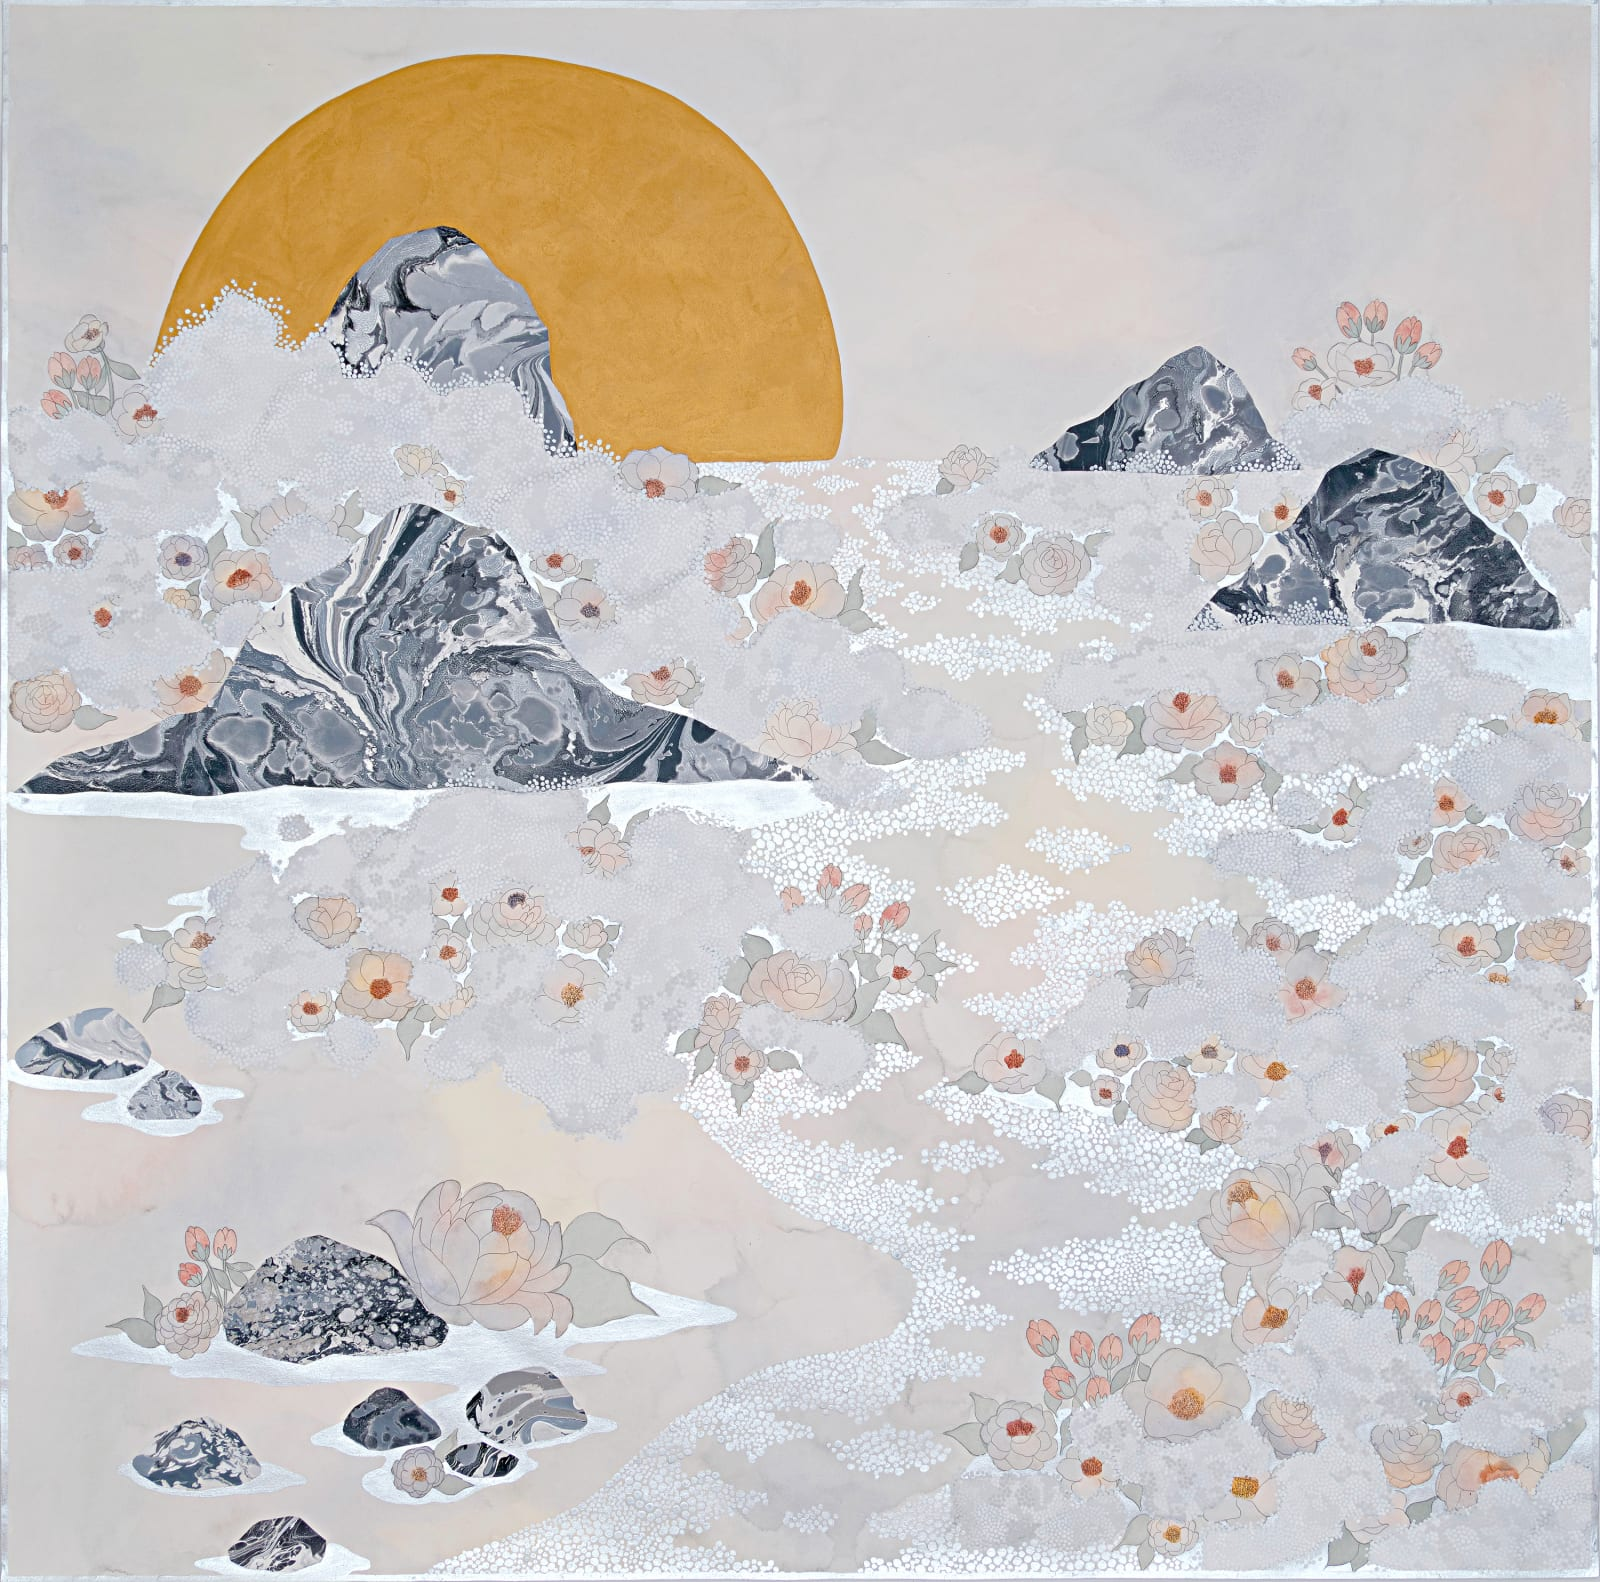 Crystal Liu, the fog, 'in waves', 2019